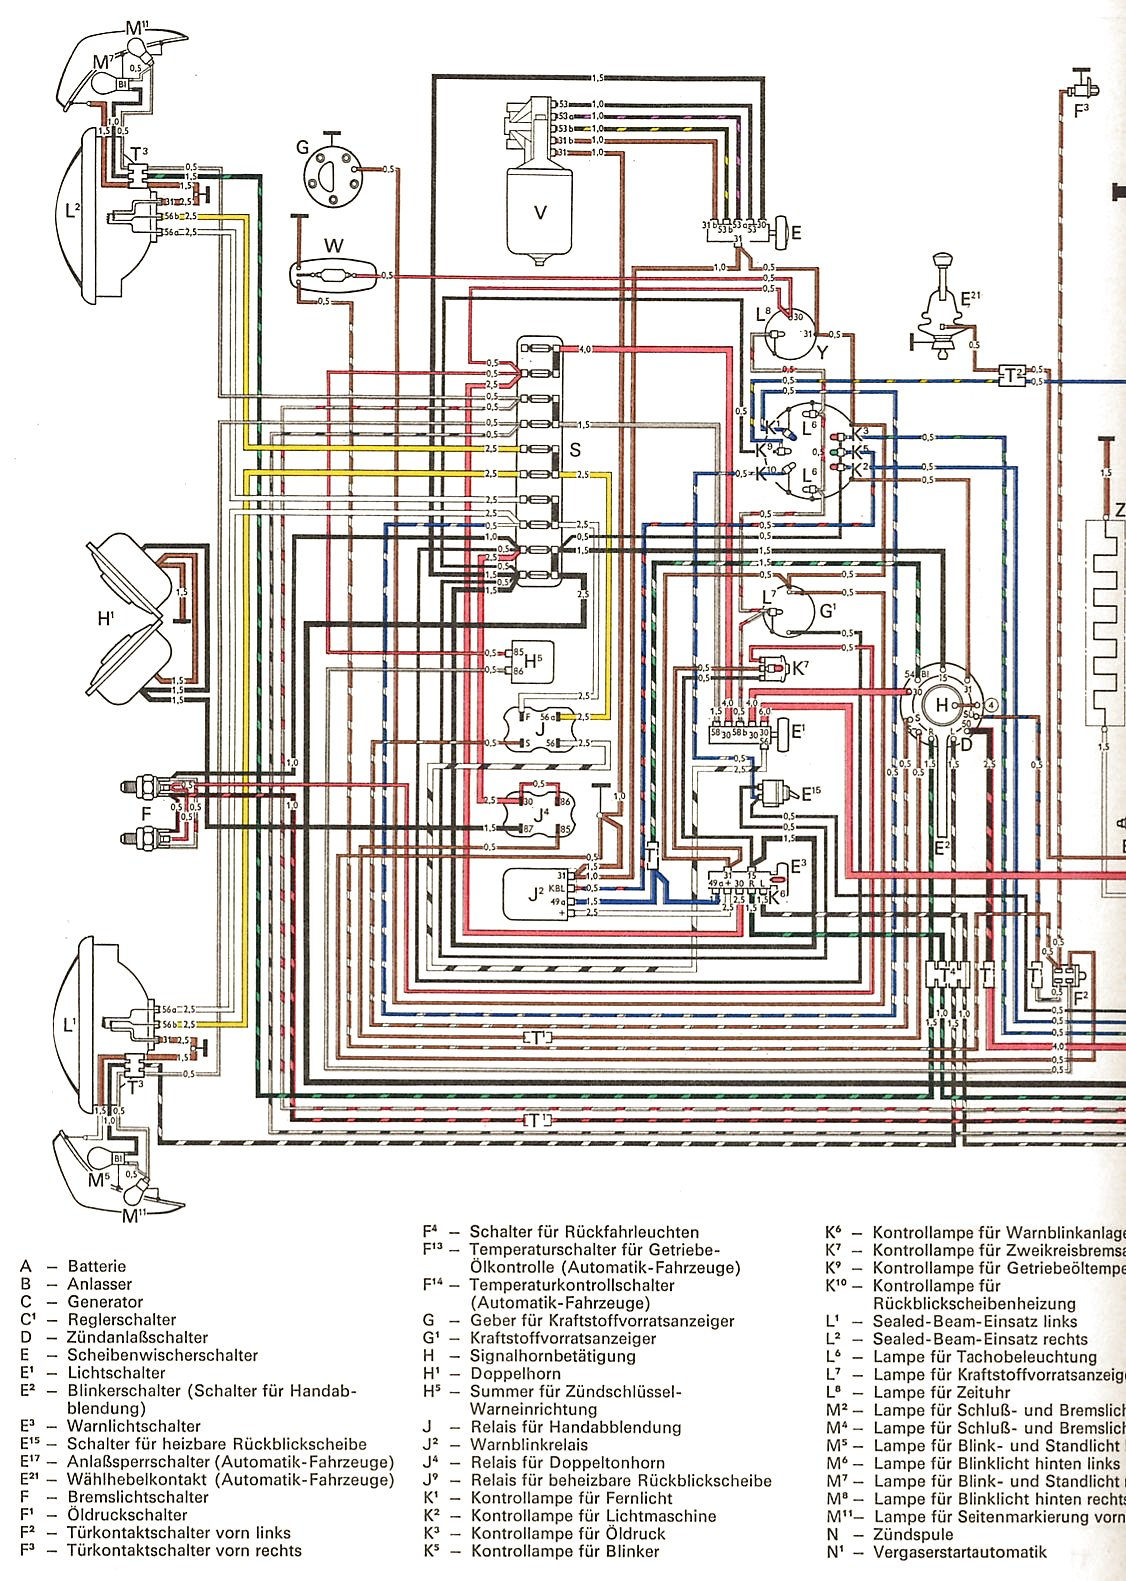 74 Charger Wiring Diagrams Diagram Services 1974 Dodge Karmann Ghia Engine Circuit Wire Rh Abetter Pw Light Switch 09